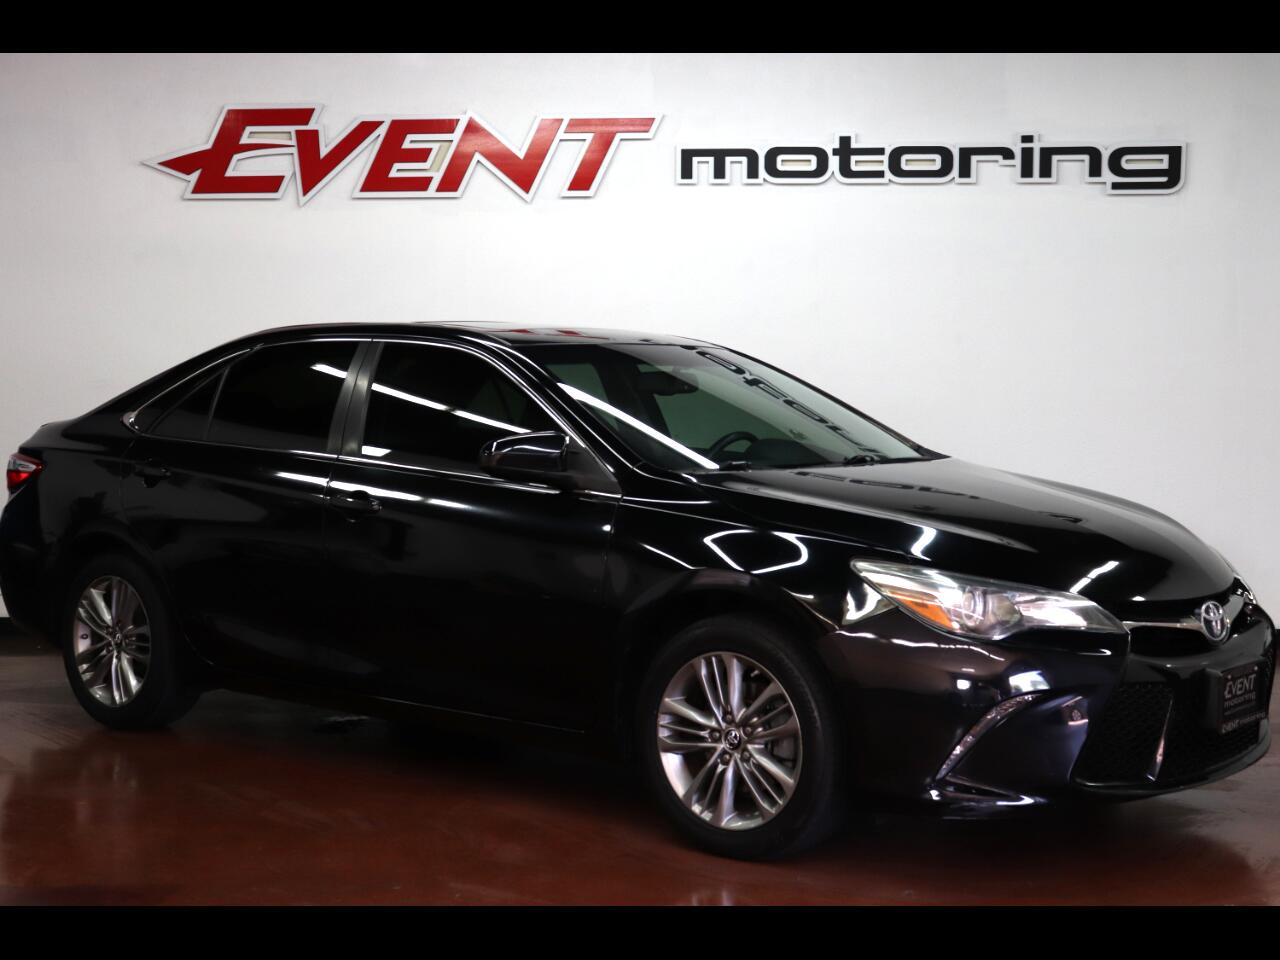 Toyota Camry 2014.5 4dr Sdn I4 Auto SE Sport (Natl) 2016